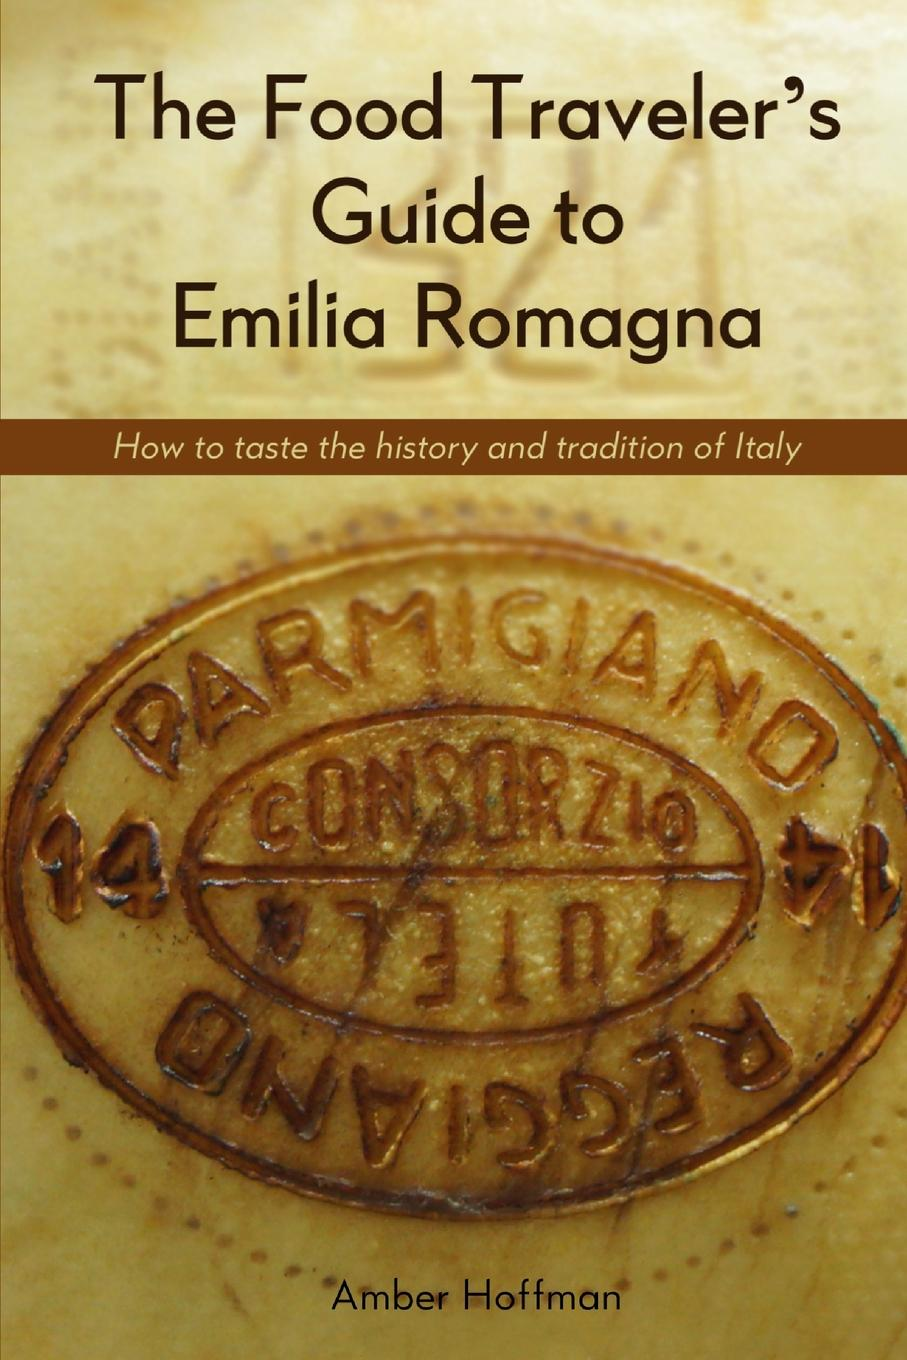 Hoffman Amber The Food Traveler.s Guide to Emilia Romagna. Tasting the history and tradition of Italy joanna blythman the food our children eat how to get children to like good food